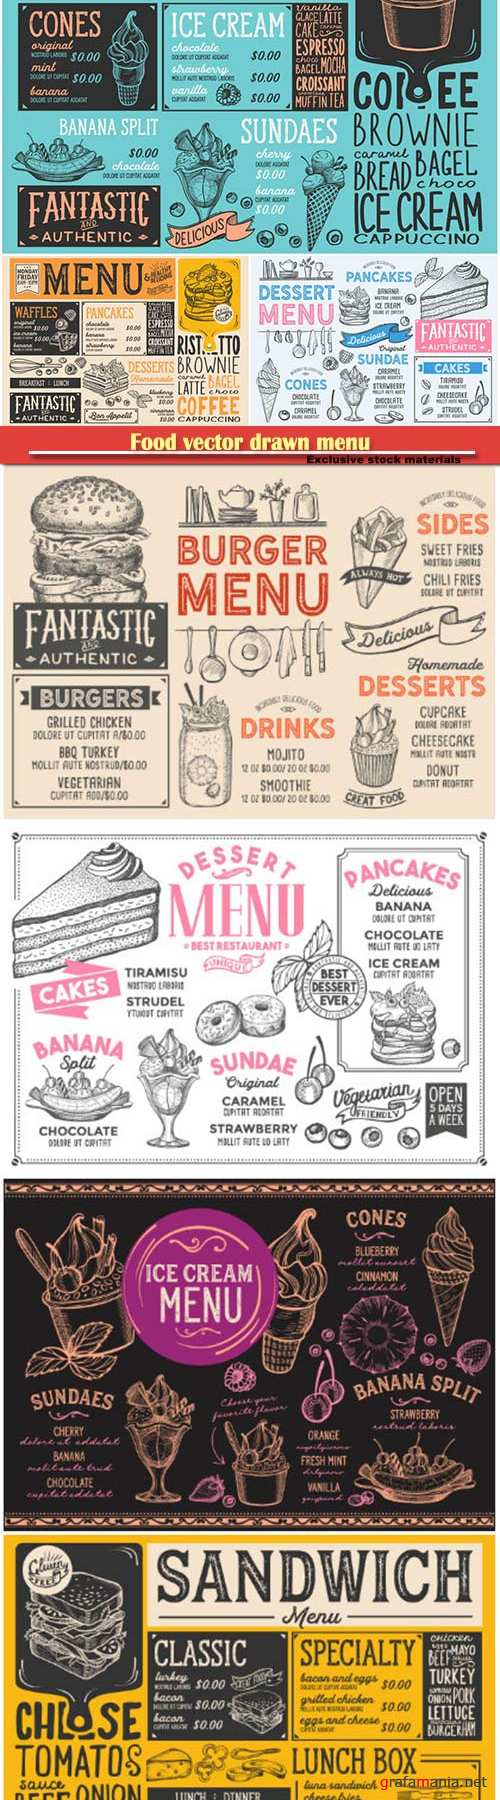 Food vector drawn menu, fast food, ice cream, cocktails, desserts